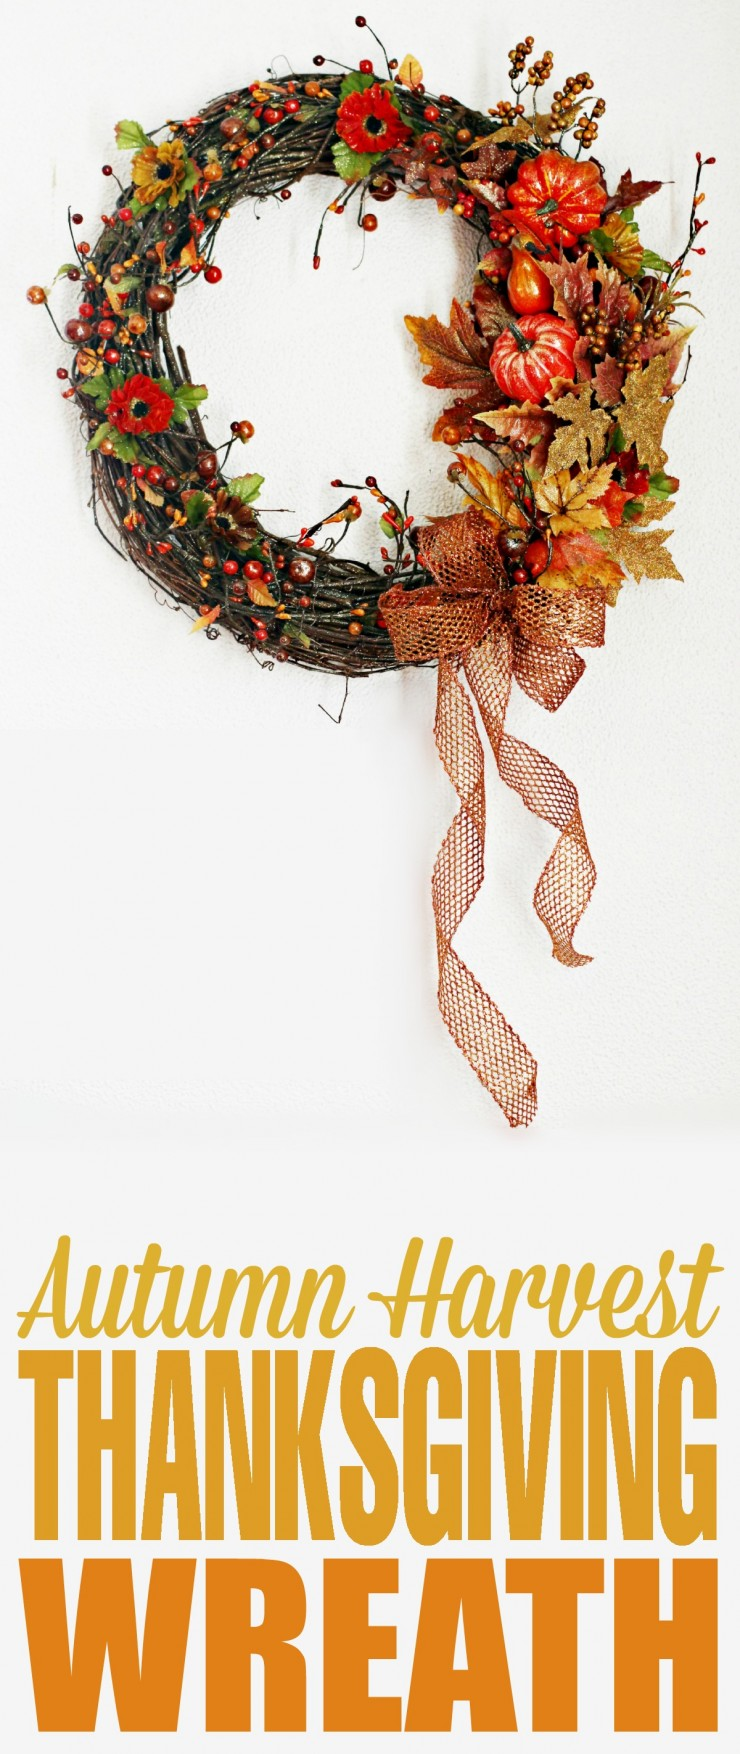 This Autumn Harvest Thanksgiving Wreath is a an easy craft project with fabulous results. It looks great handing on a wall or front door!